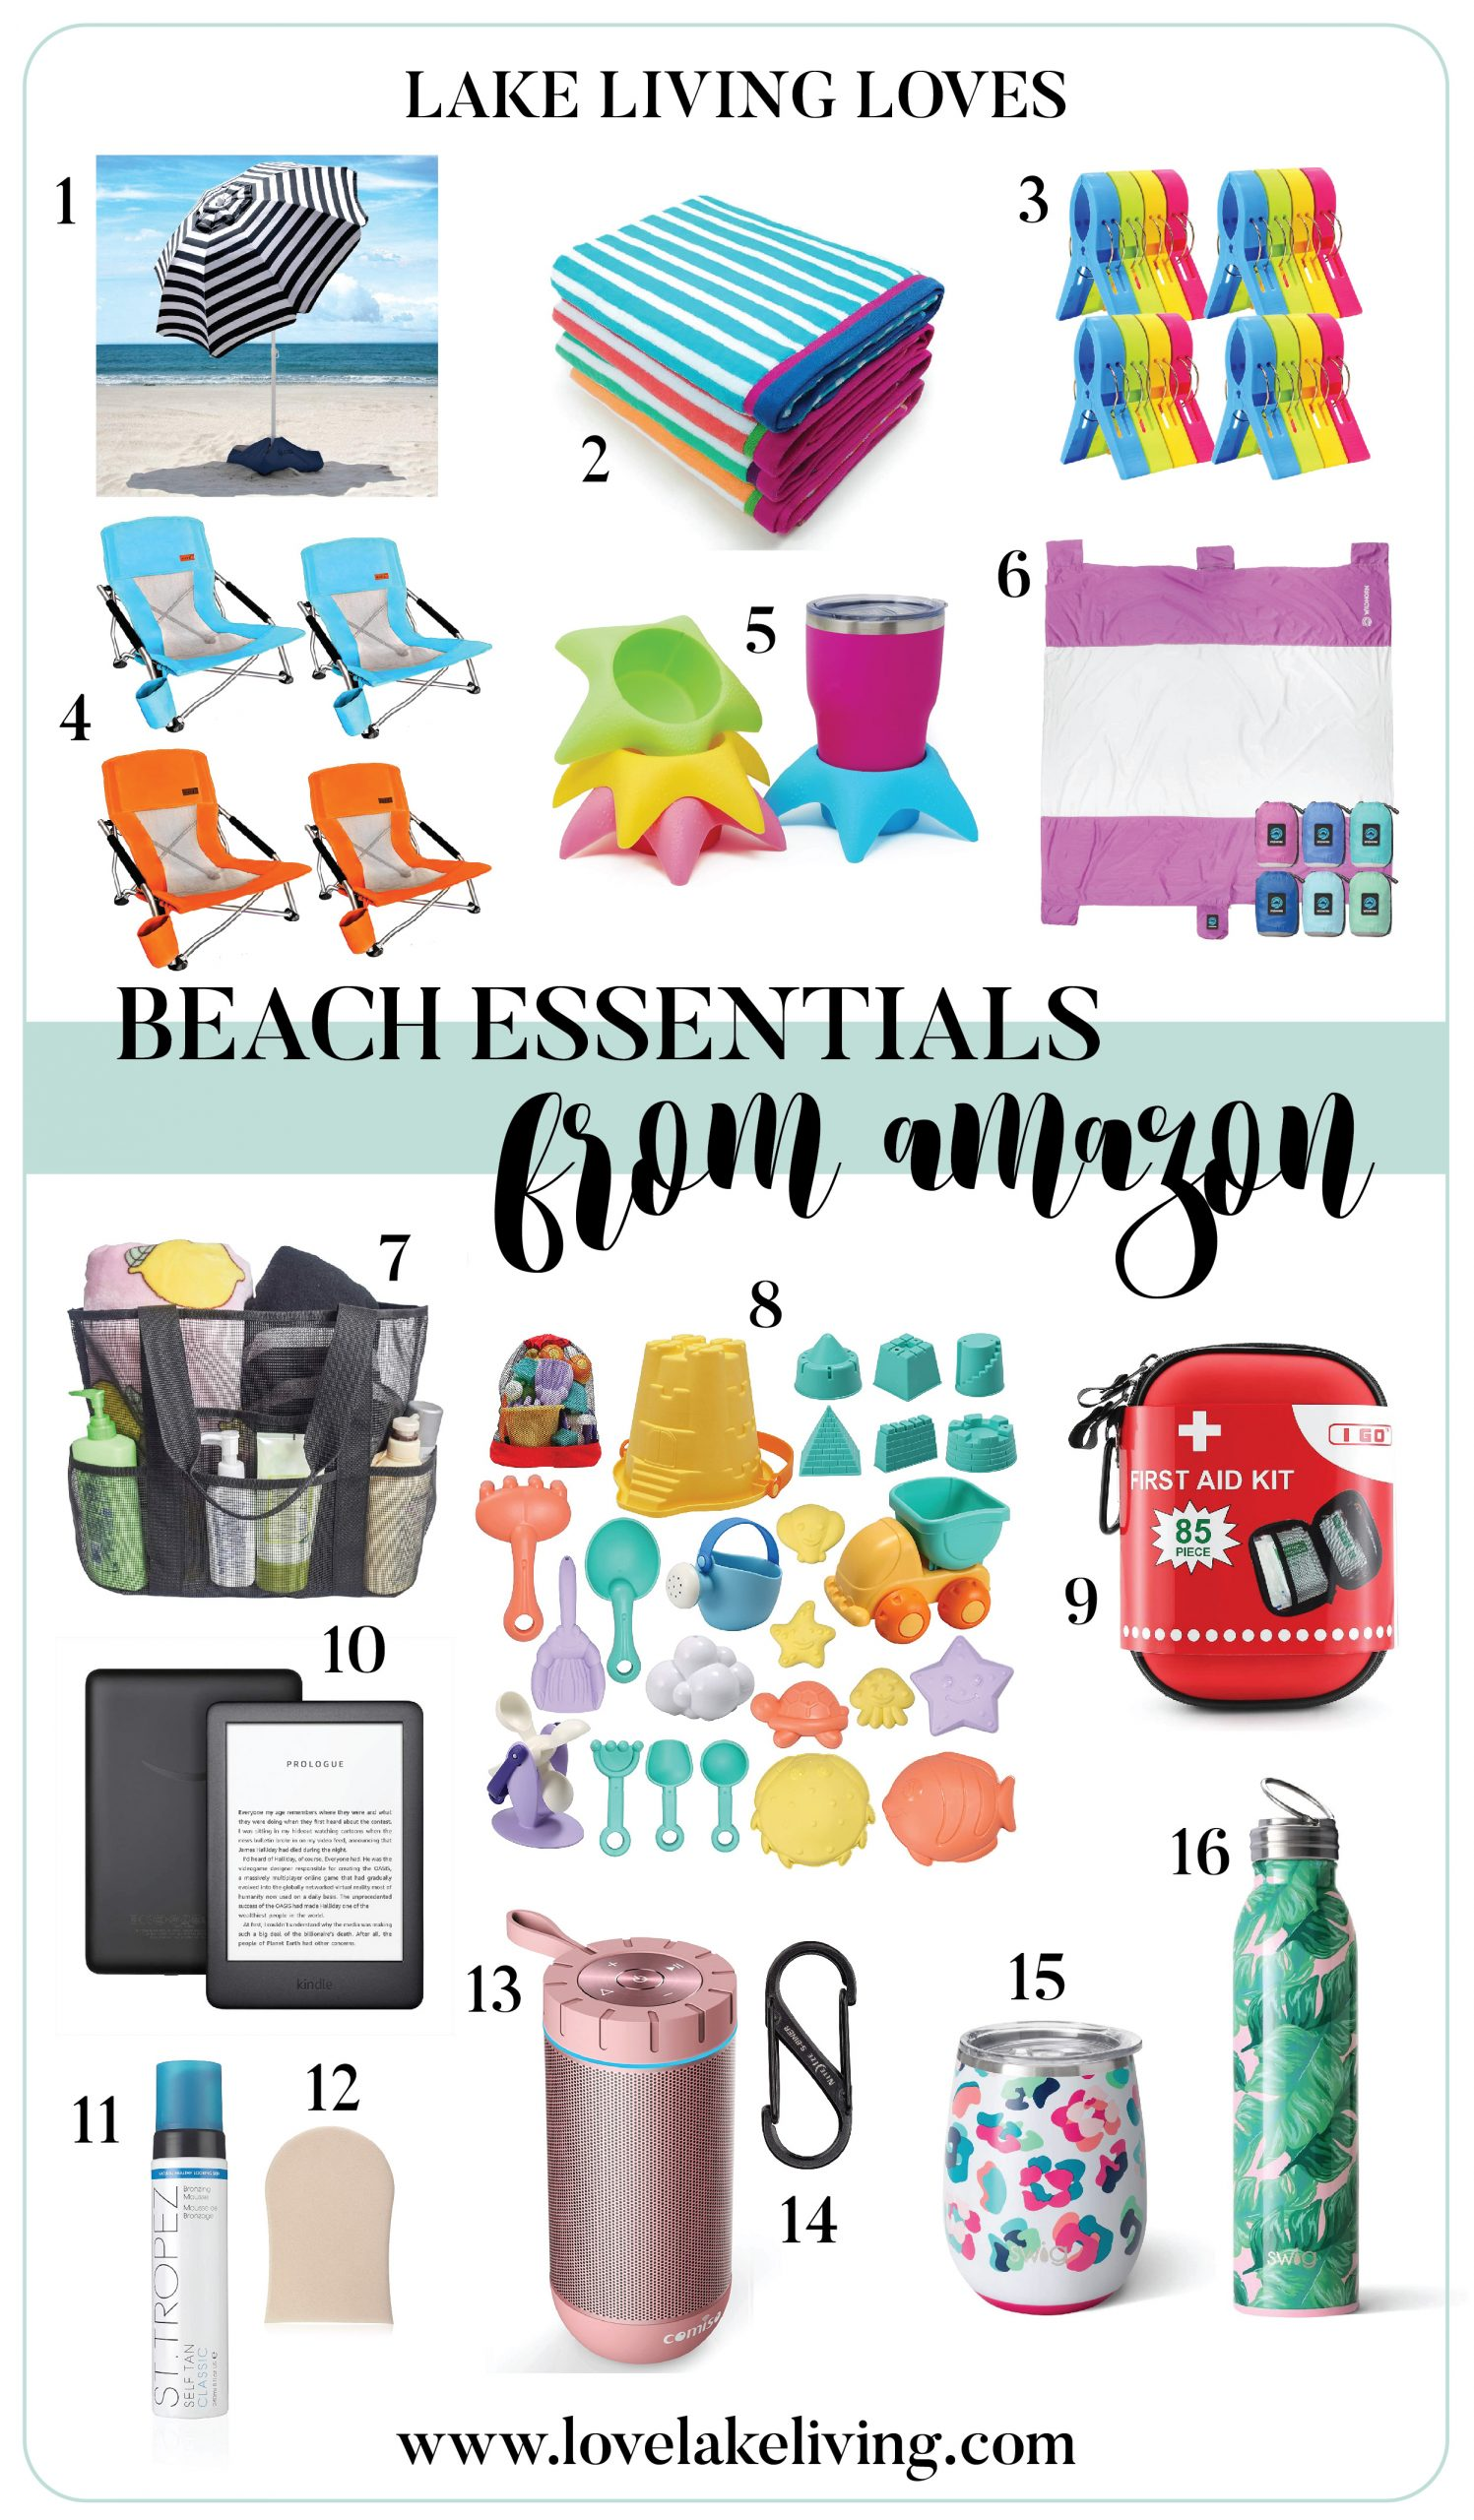 Lake Living Loves Beach Essentials From Amazon Love Lake Living